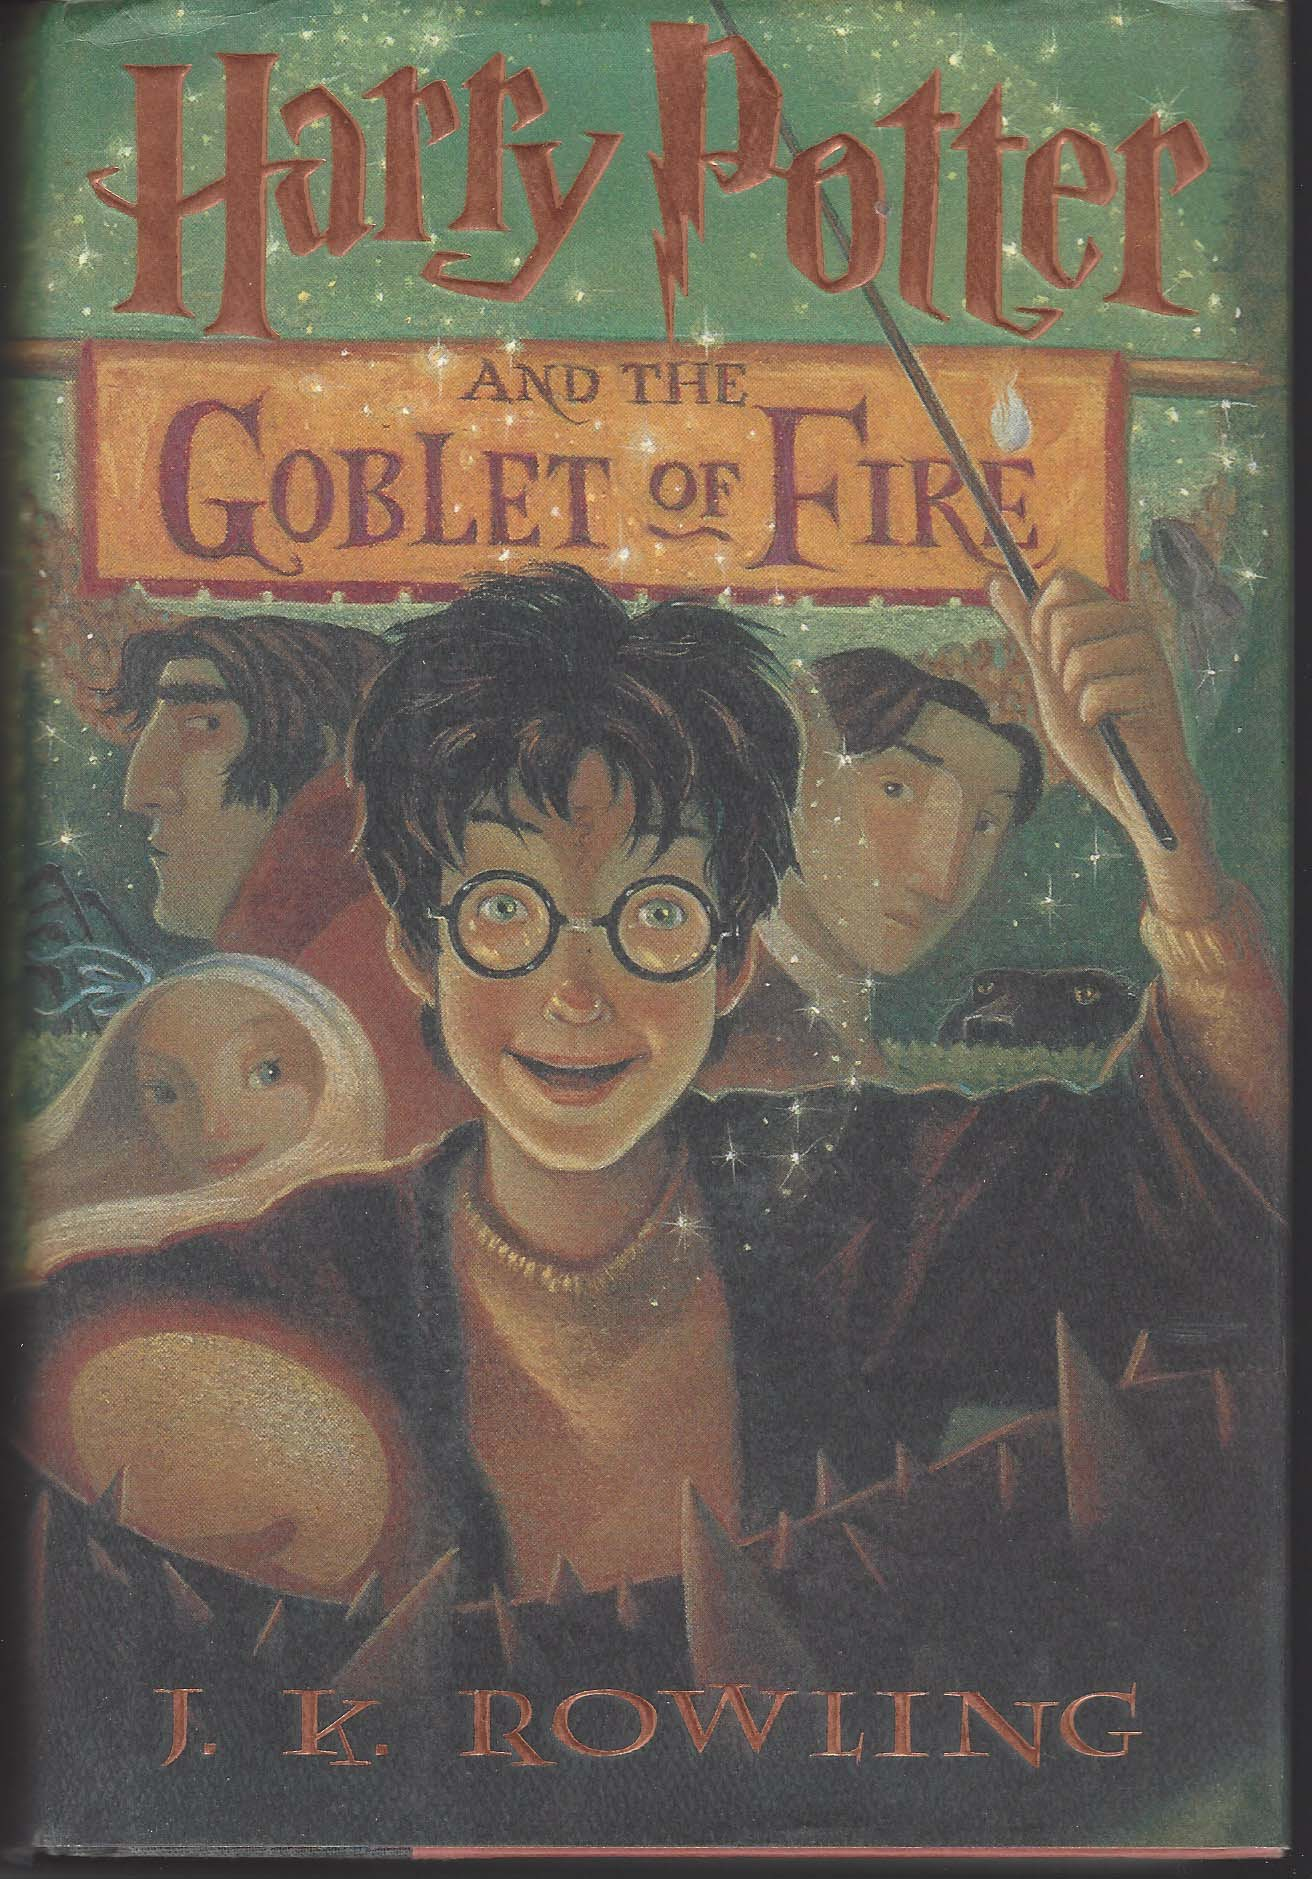 Harry Potter and The Goblet of Fire   - Harry Potter #4 - J.K. Rowling